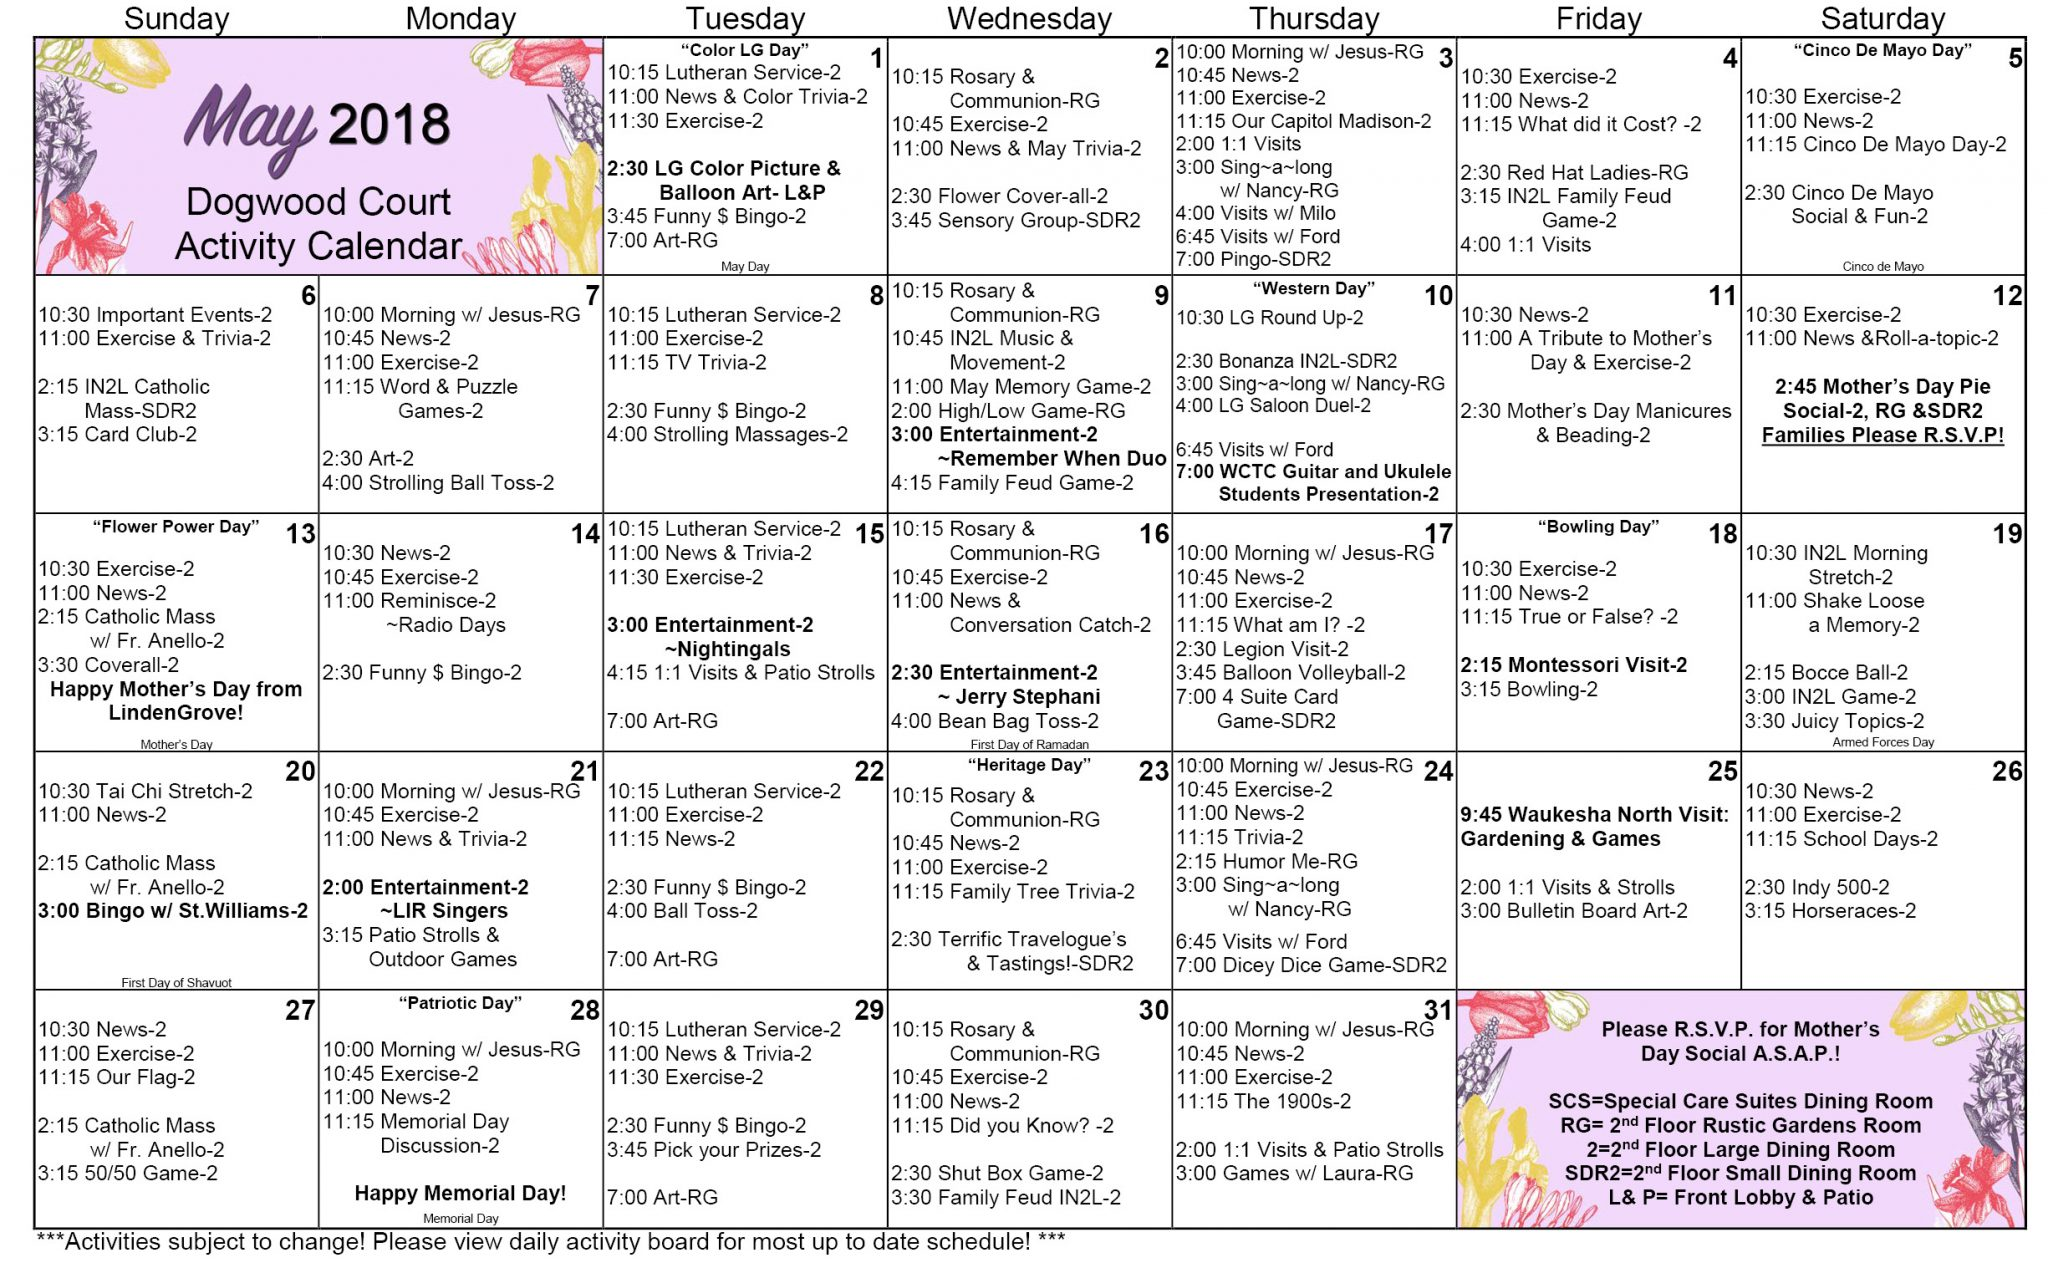 May 2018 WK Dogwood Calendar